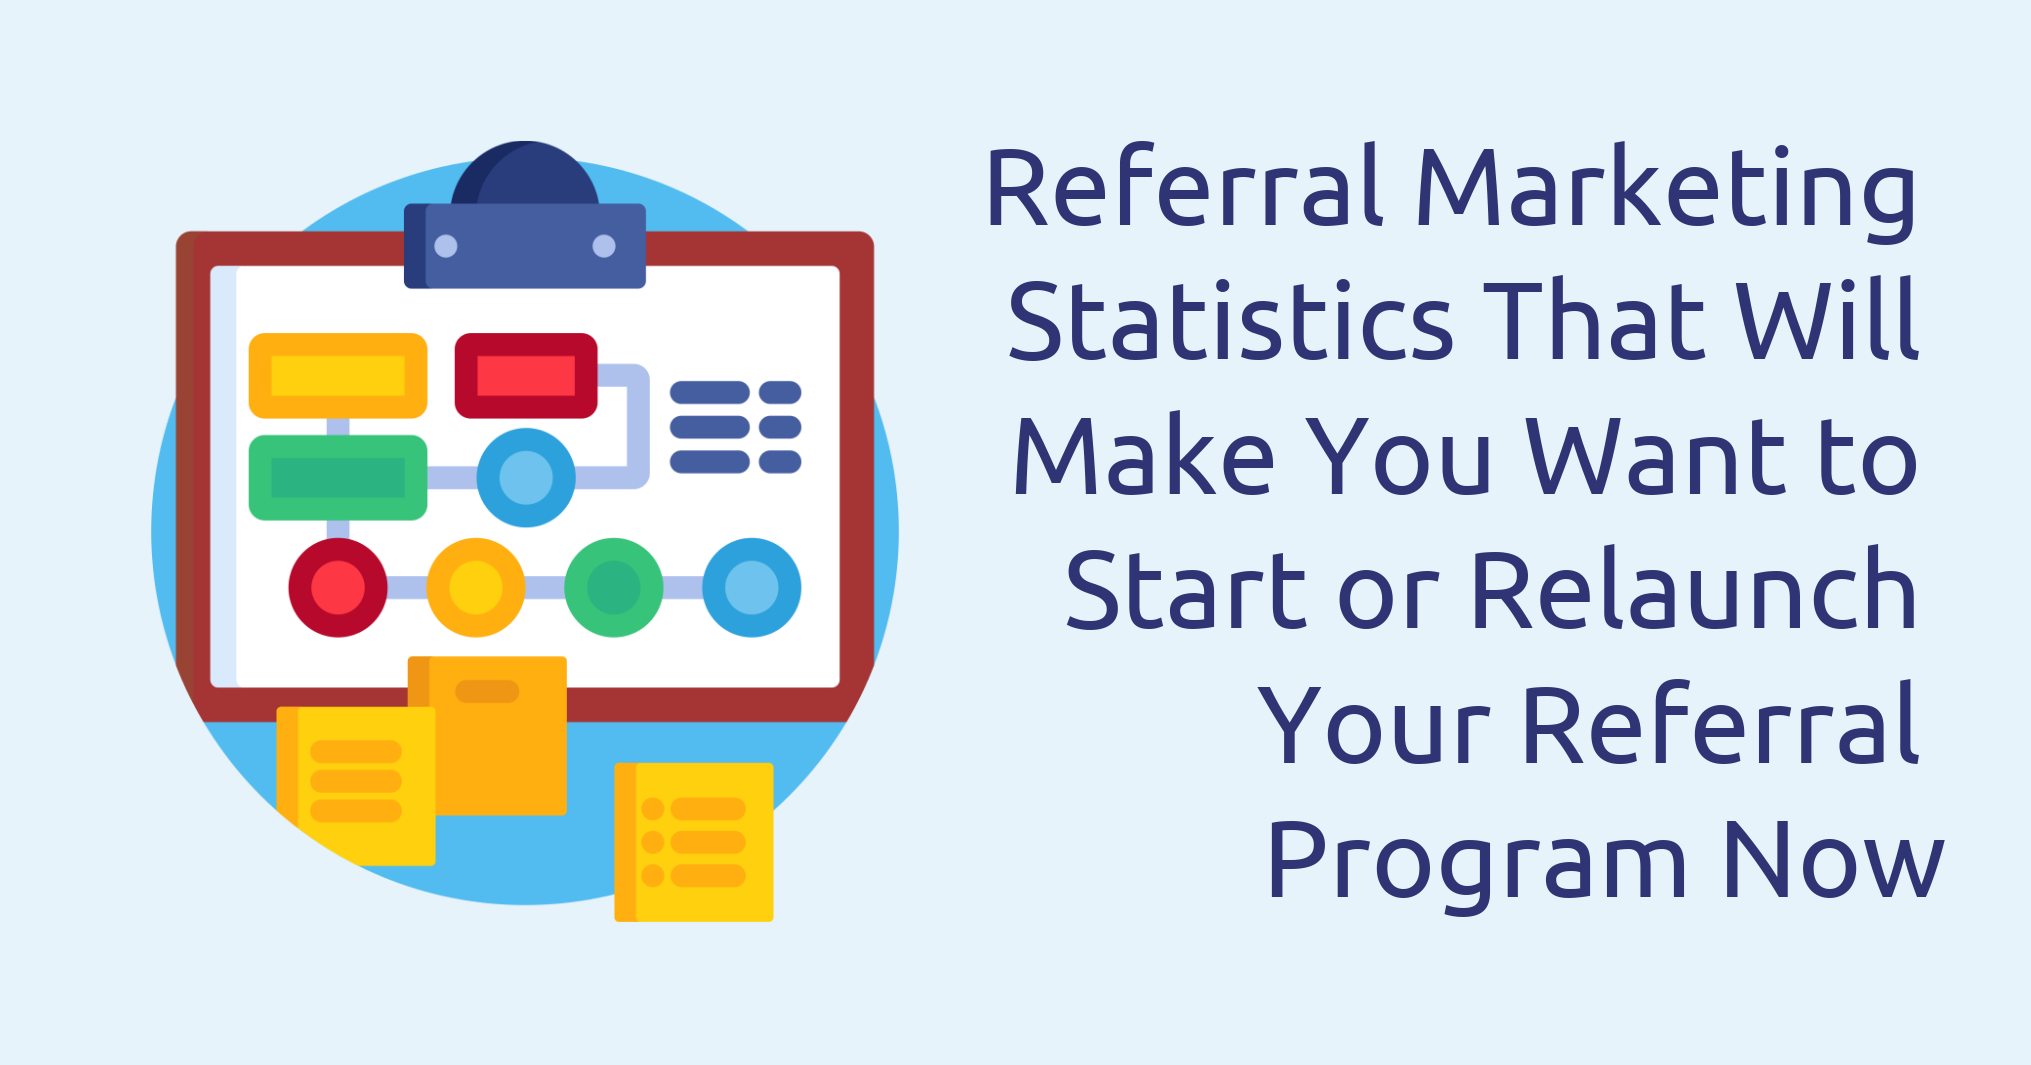 Referral Marketing Statistics That Will Make You Want to Start or Relaunch Your Referral Program Now